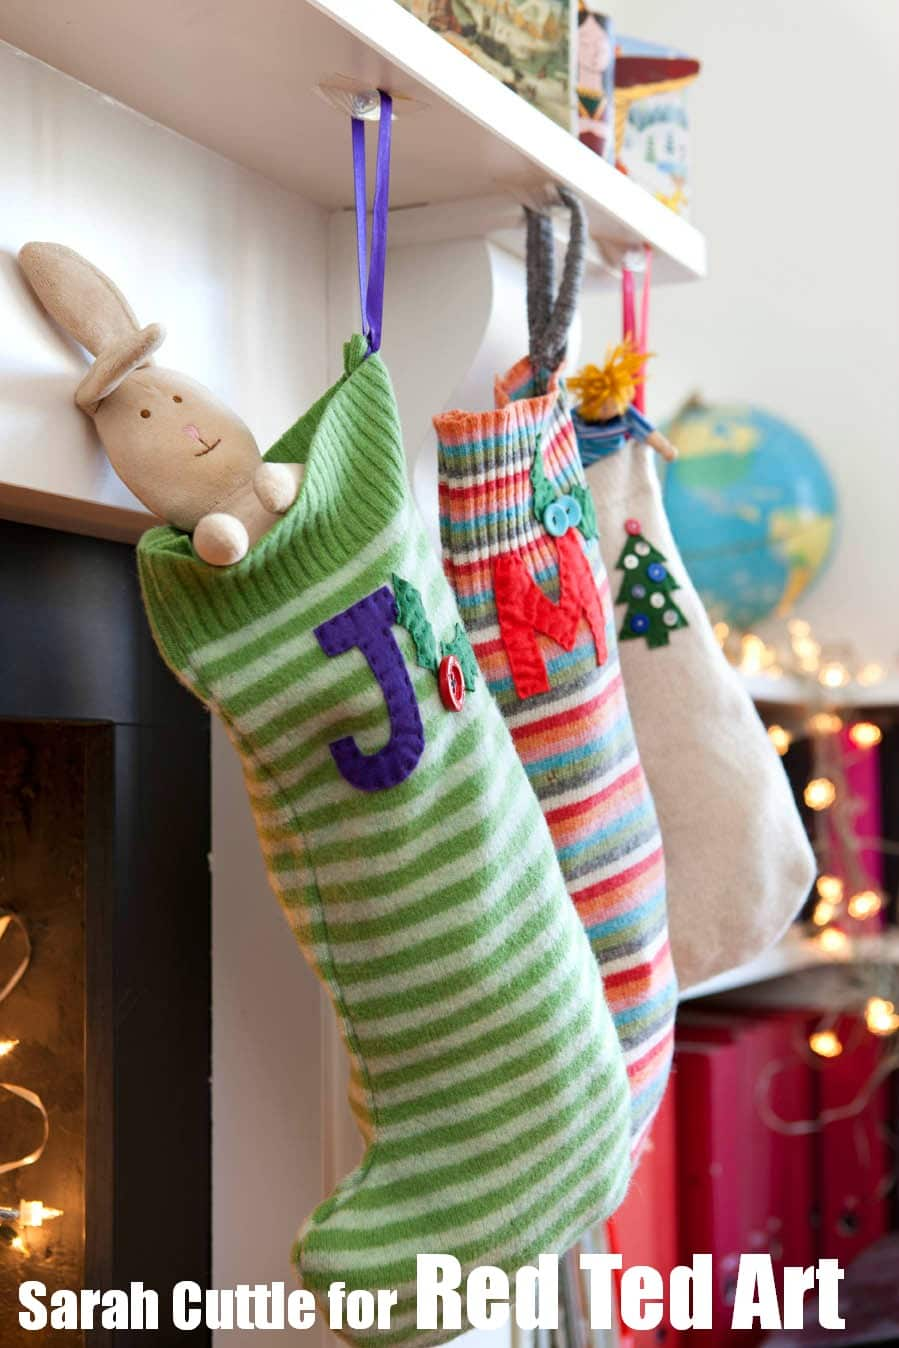 How to... make a No Knit Knitted Christmas Stocking - Red Ted Art\'s Blog